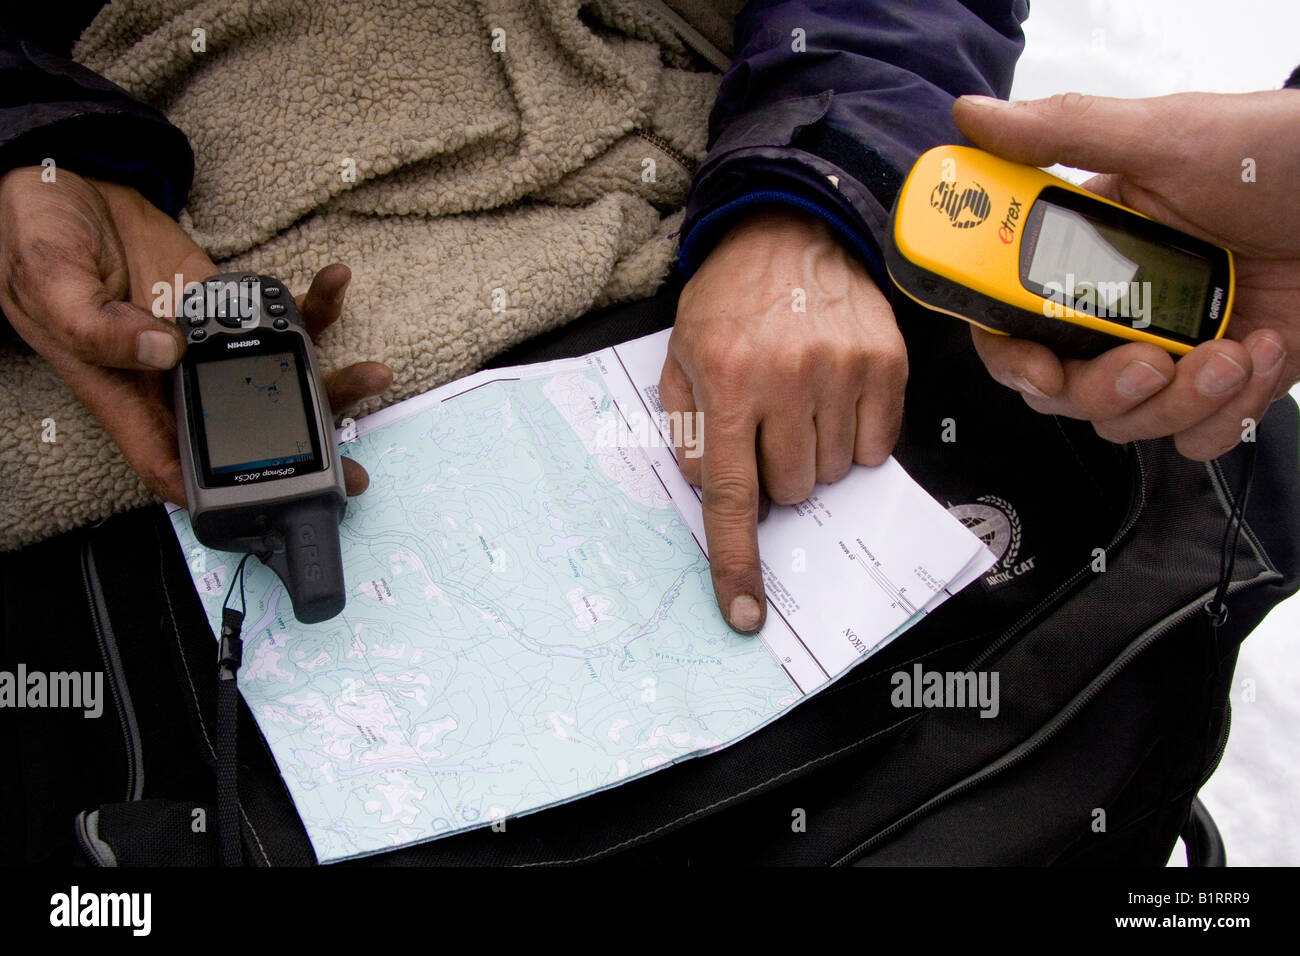 Navigation using a Garmin GPS device and a map - Stock Image